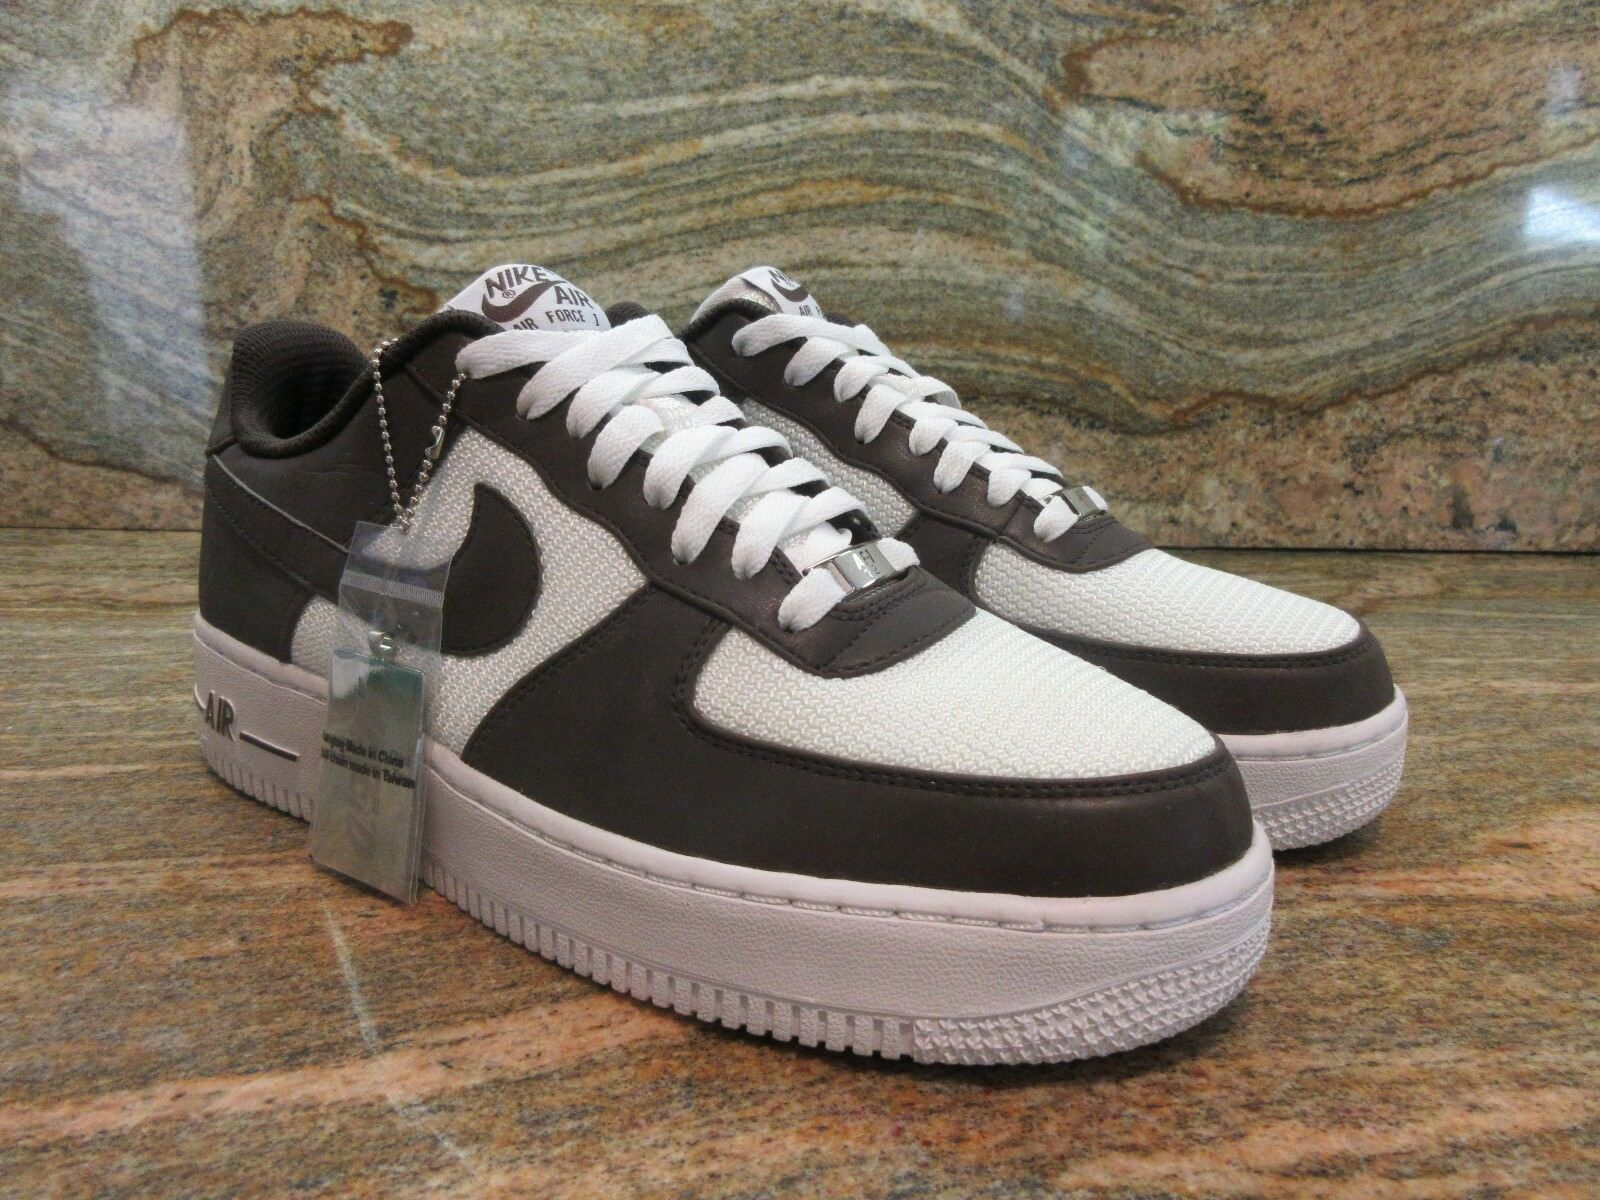 2013 Nike Air Force 1 Low Premium iD SZ 9 3M Reflective Brown White 444758-900